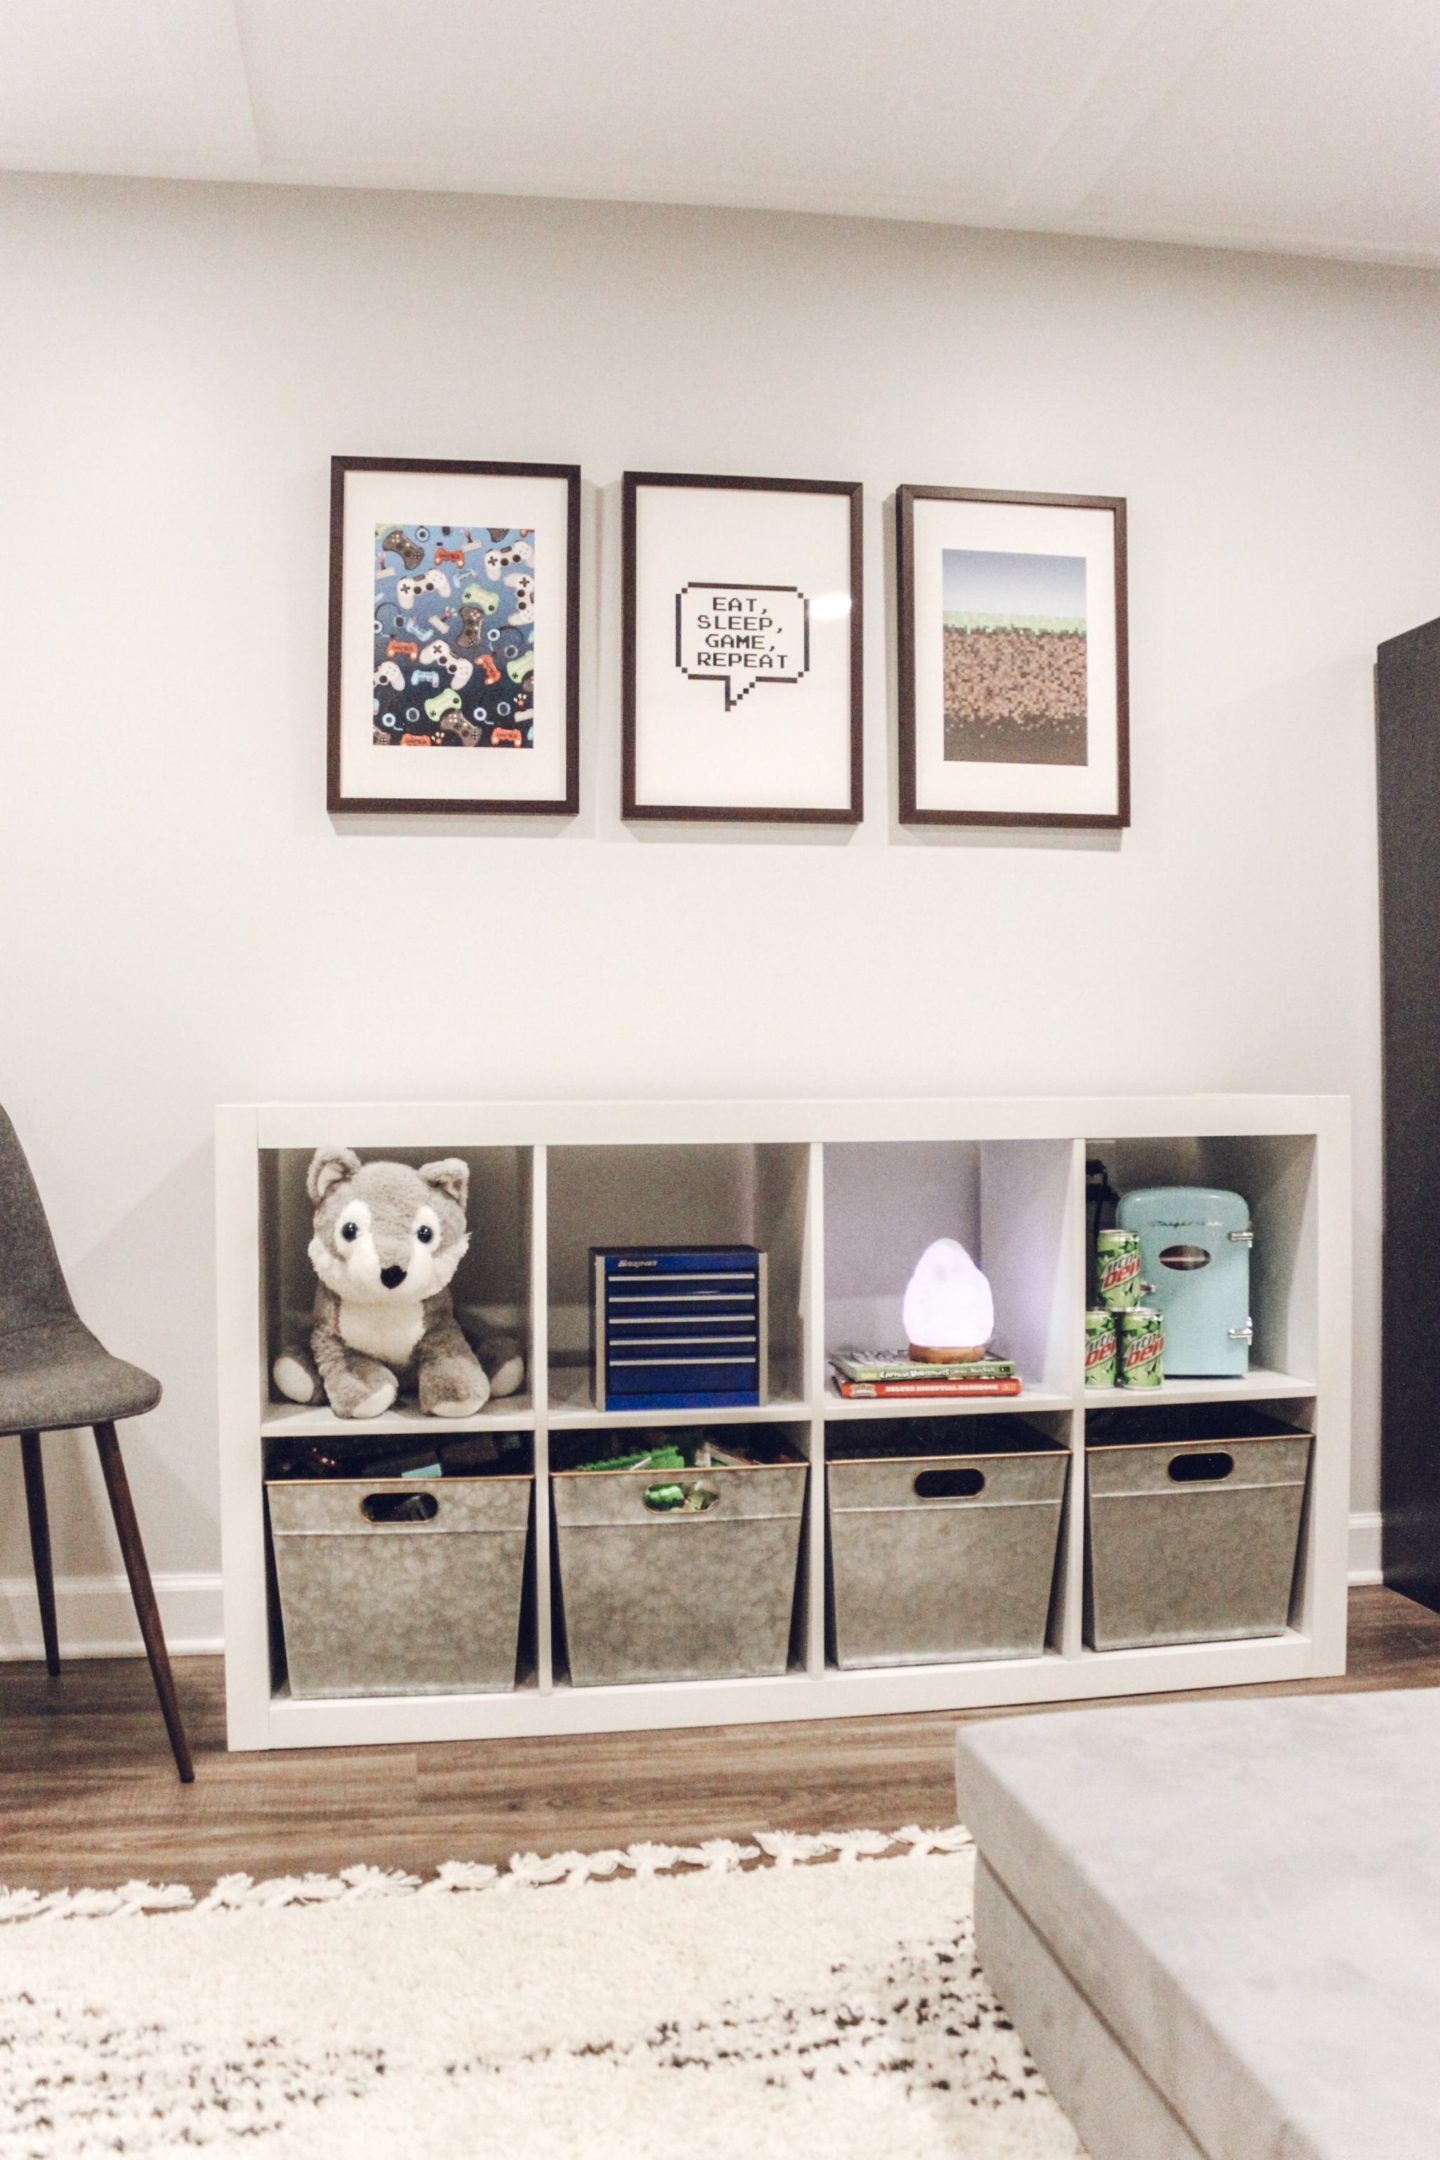 Game Room Wall Art and Storage